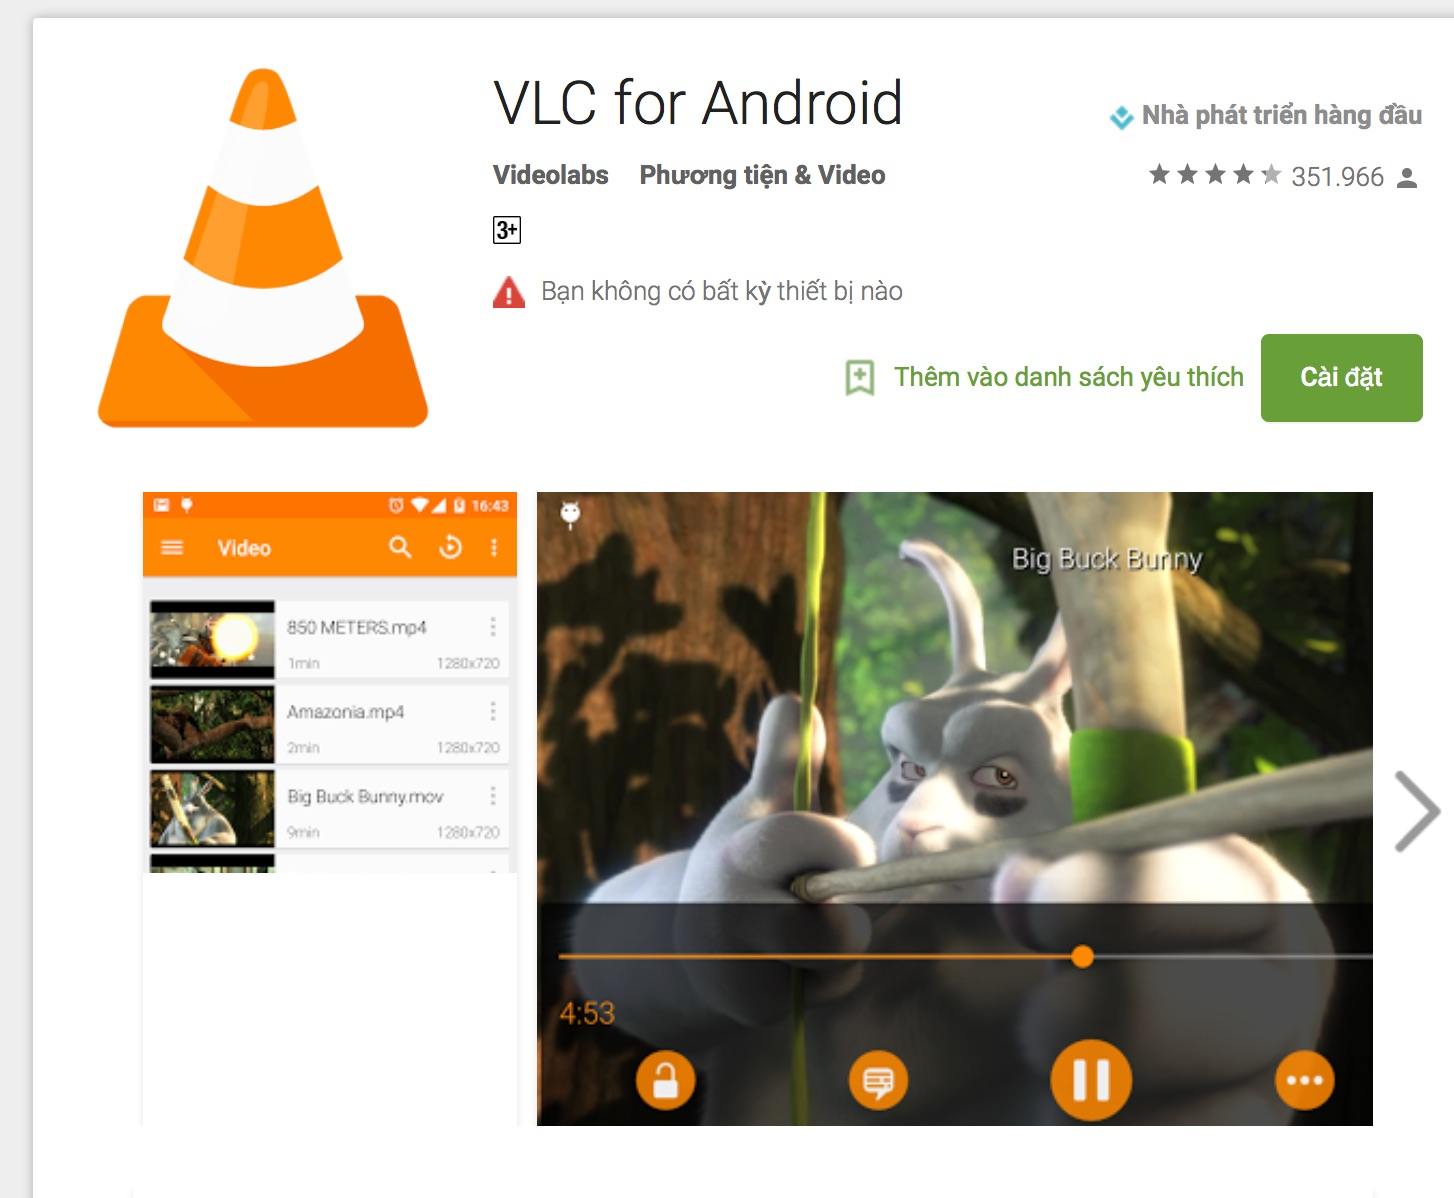 ung dung choi video android